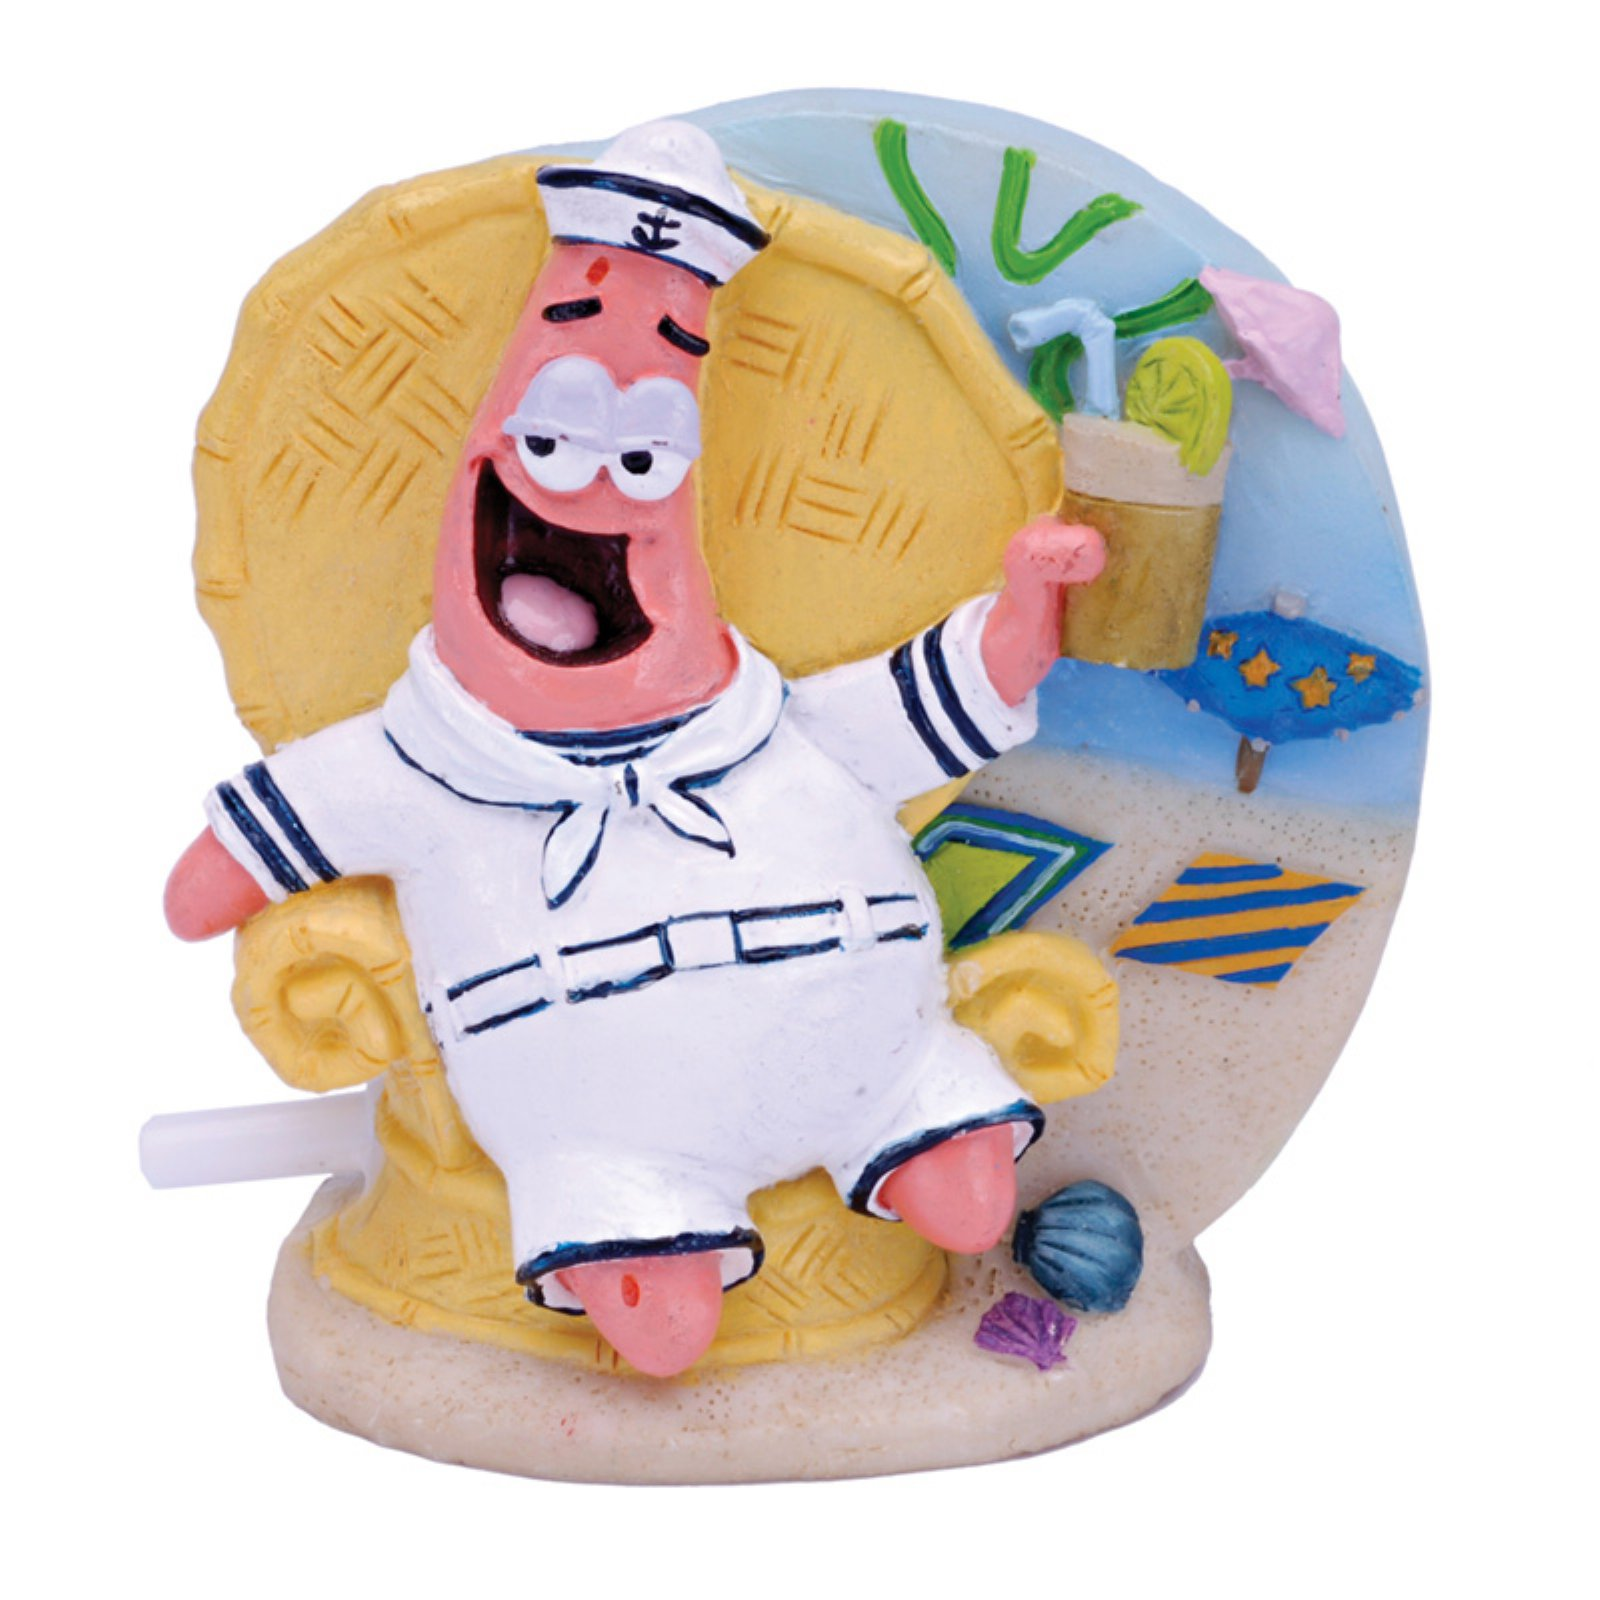 Penn Plax SpongeBob Patrick in Tiki Lounge Chair  Aquarium Figure